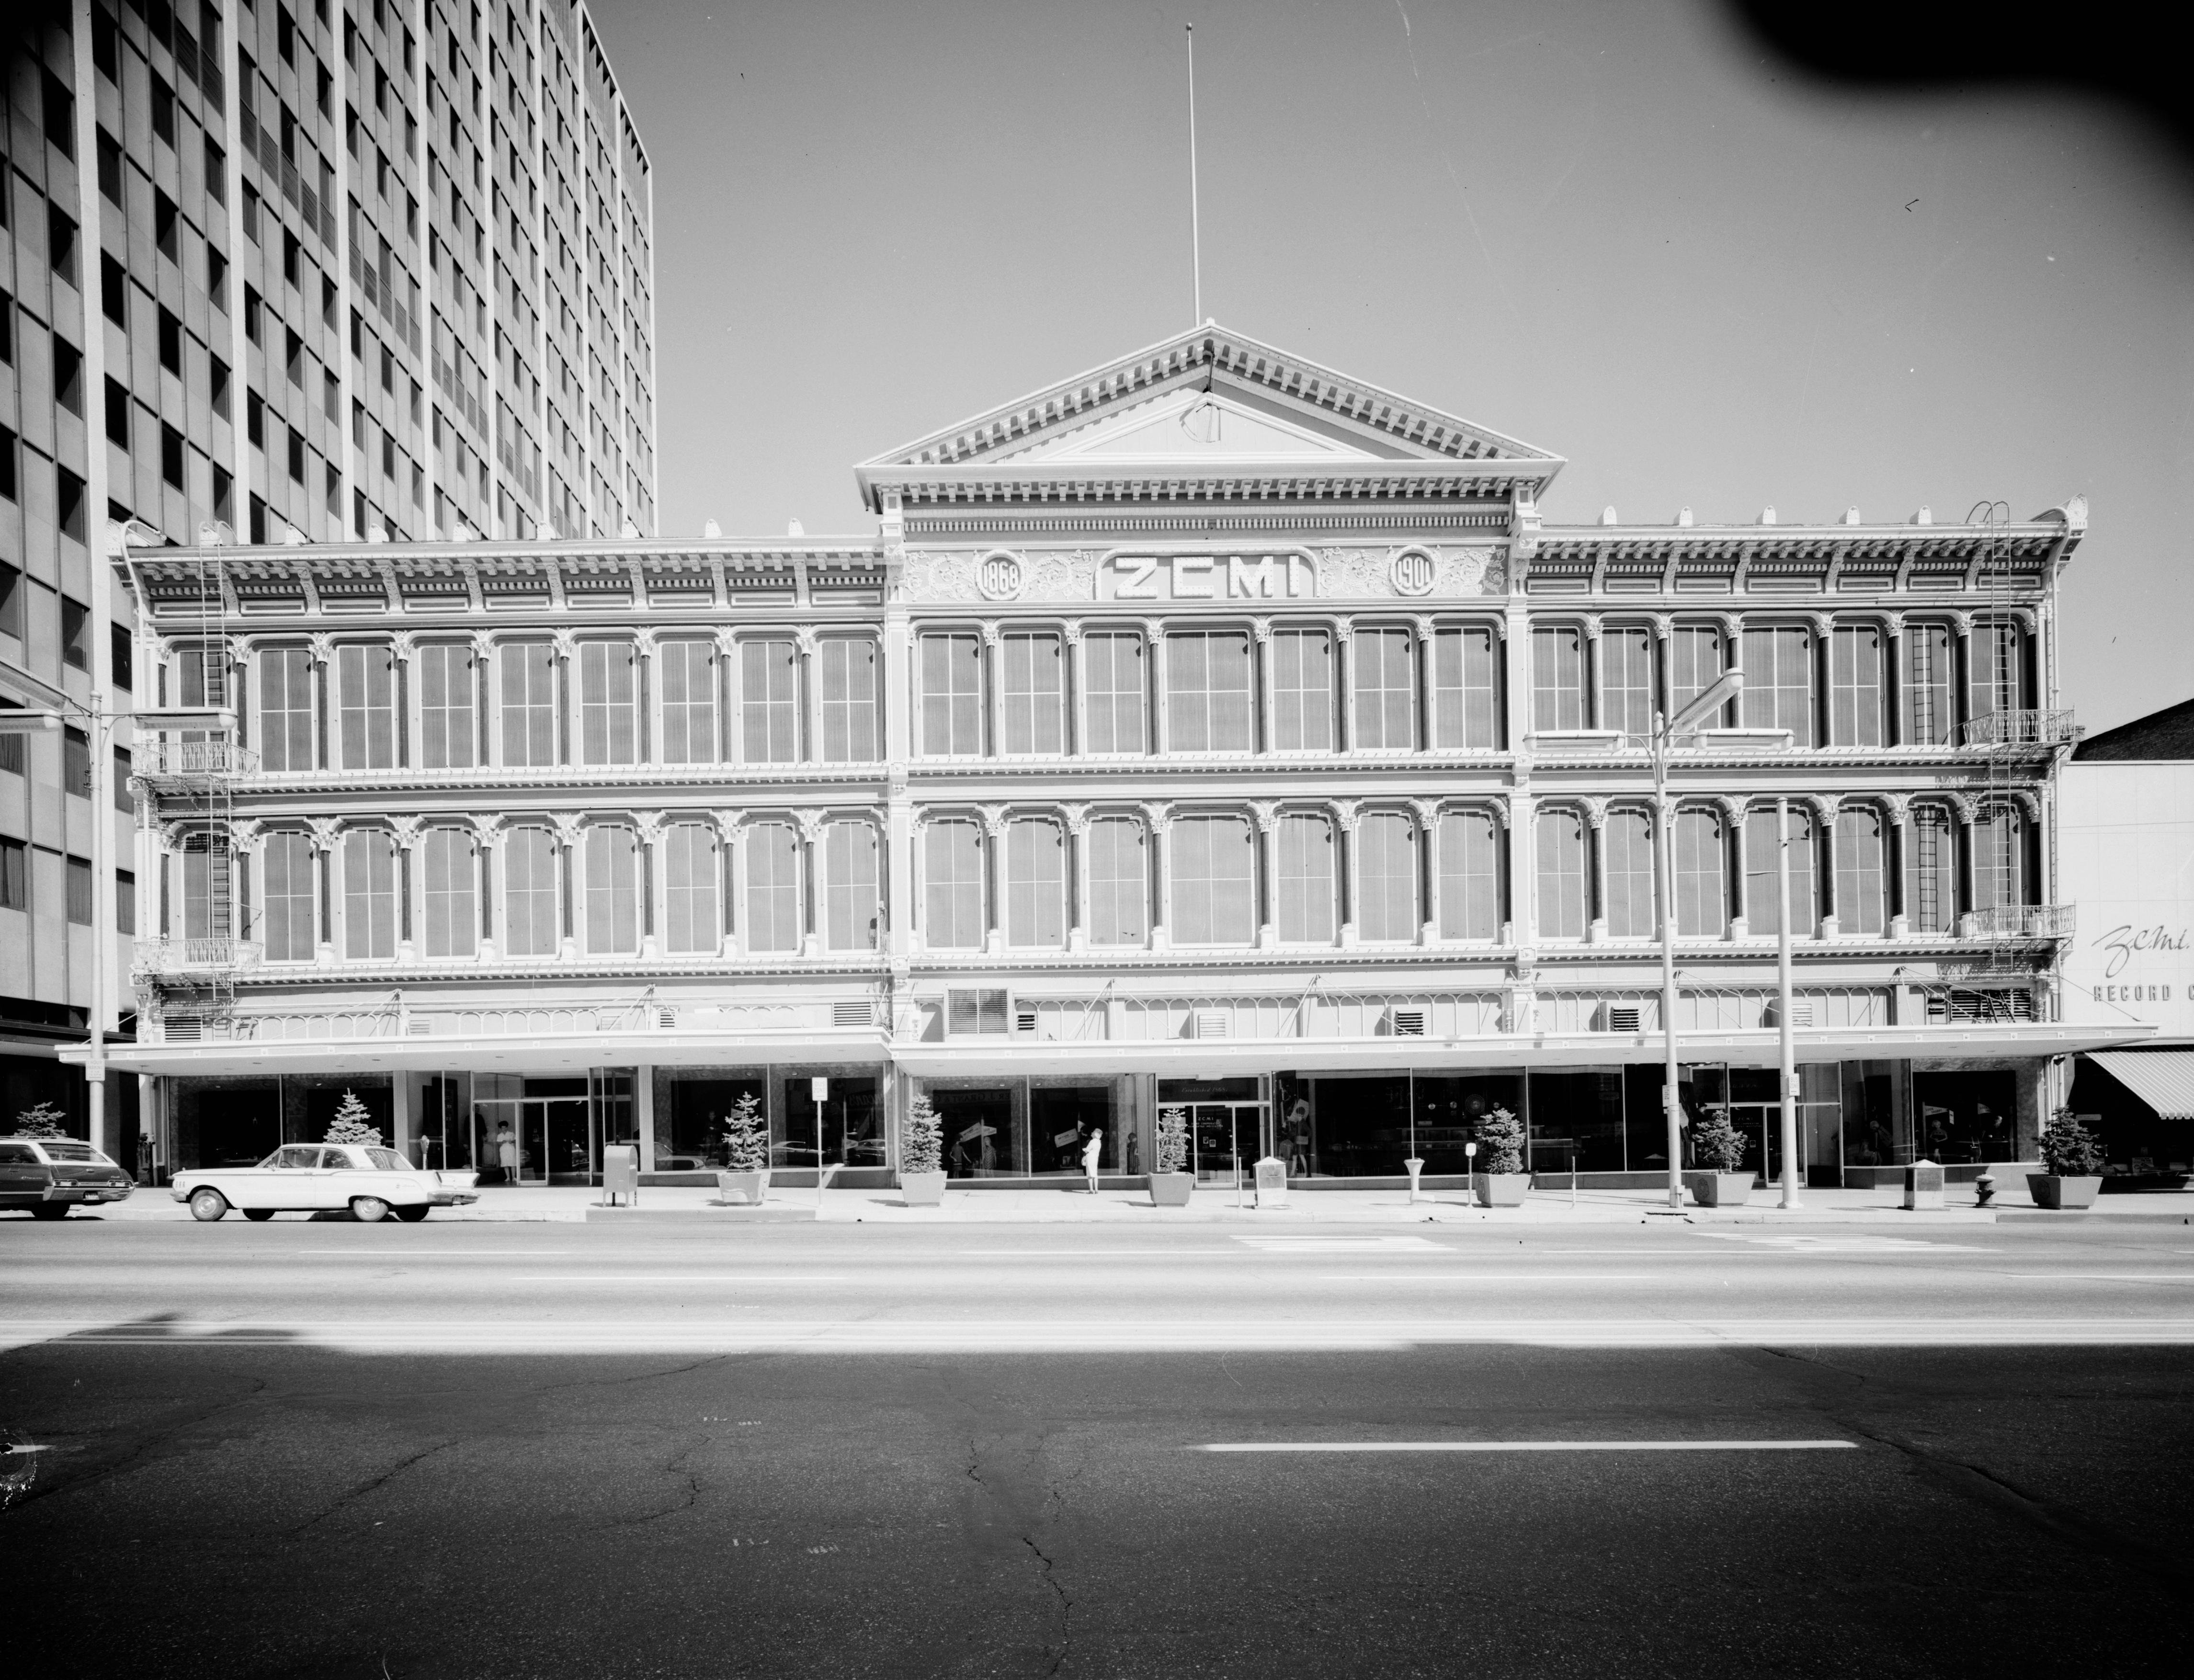 A view of the original building in 1967 prior to the first restoration of the facade.